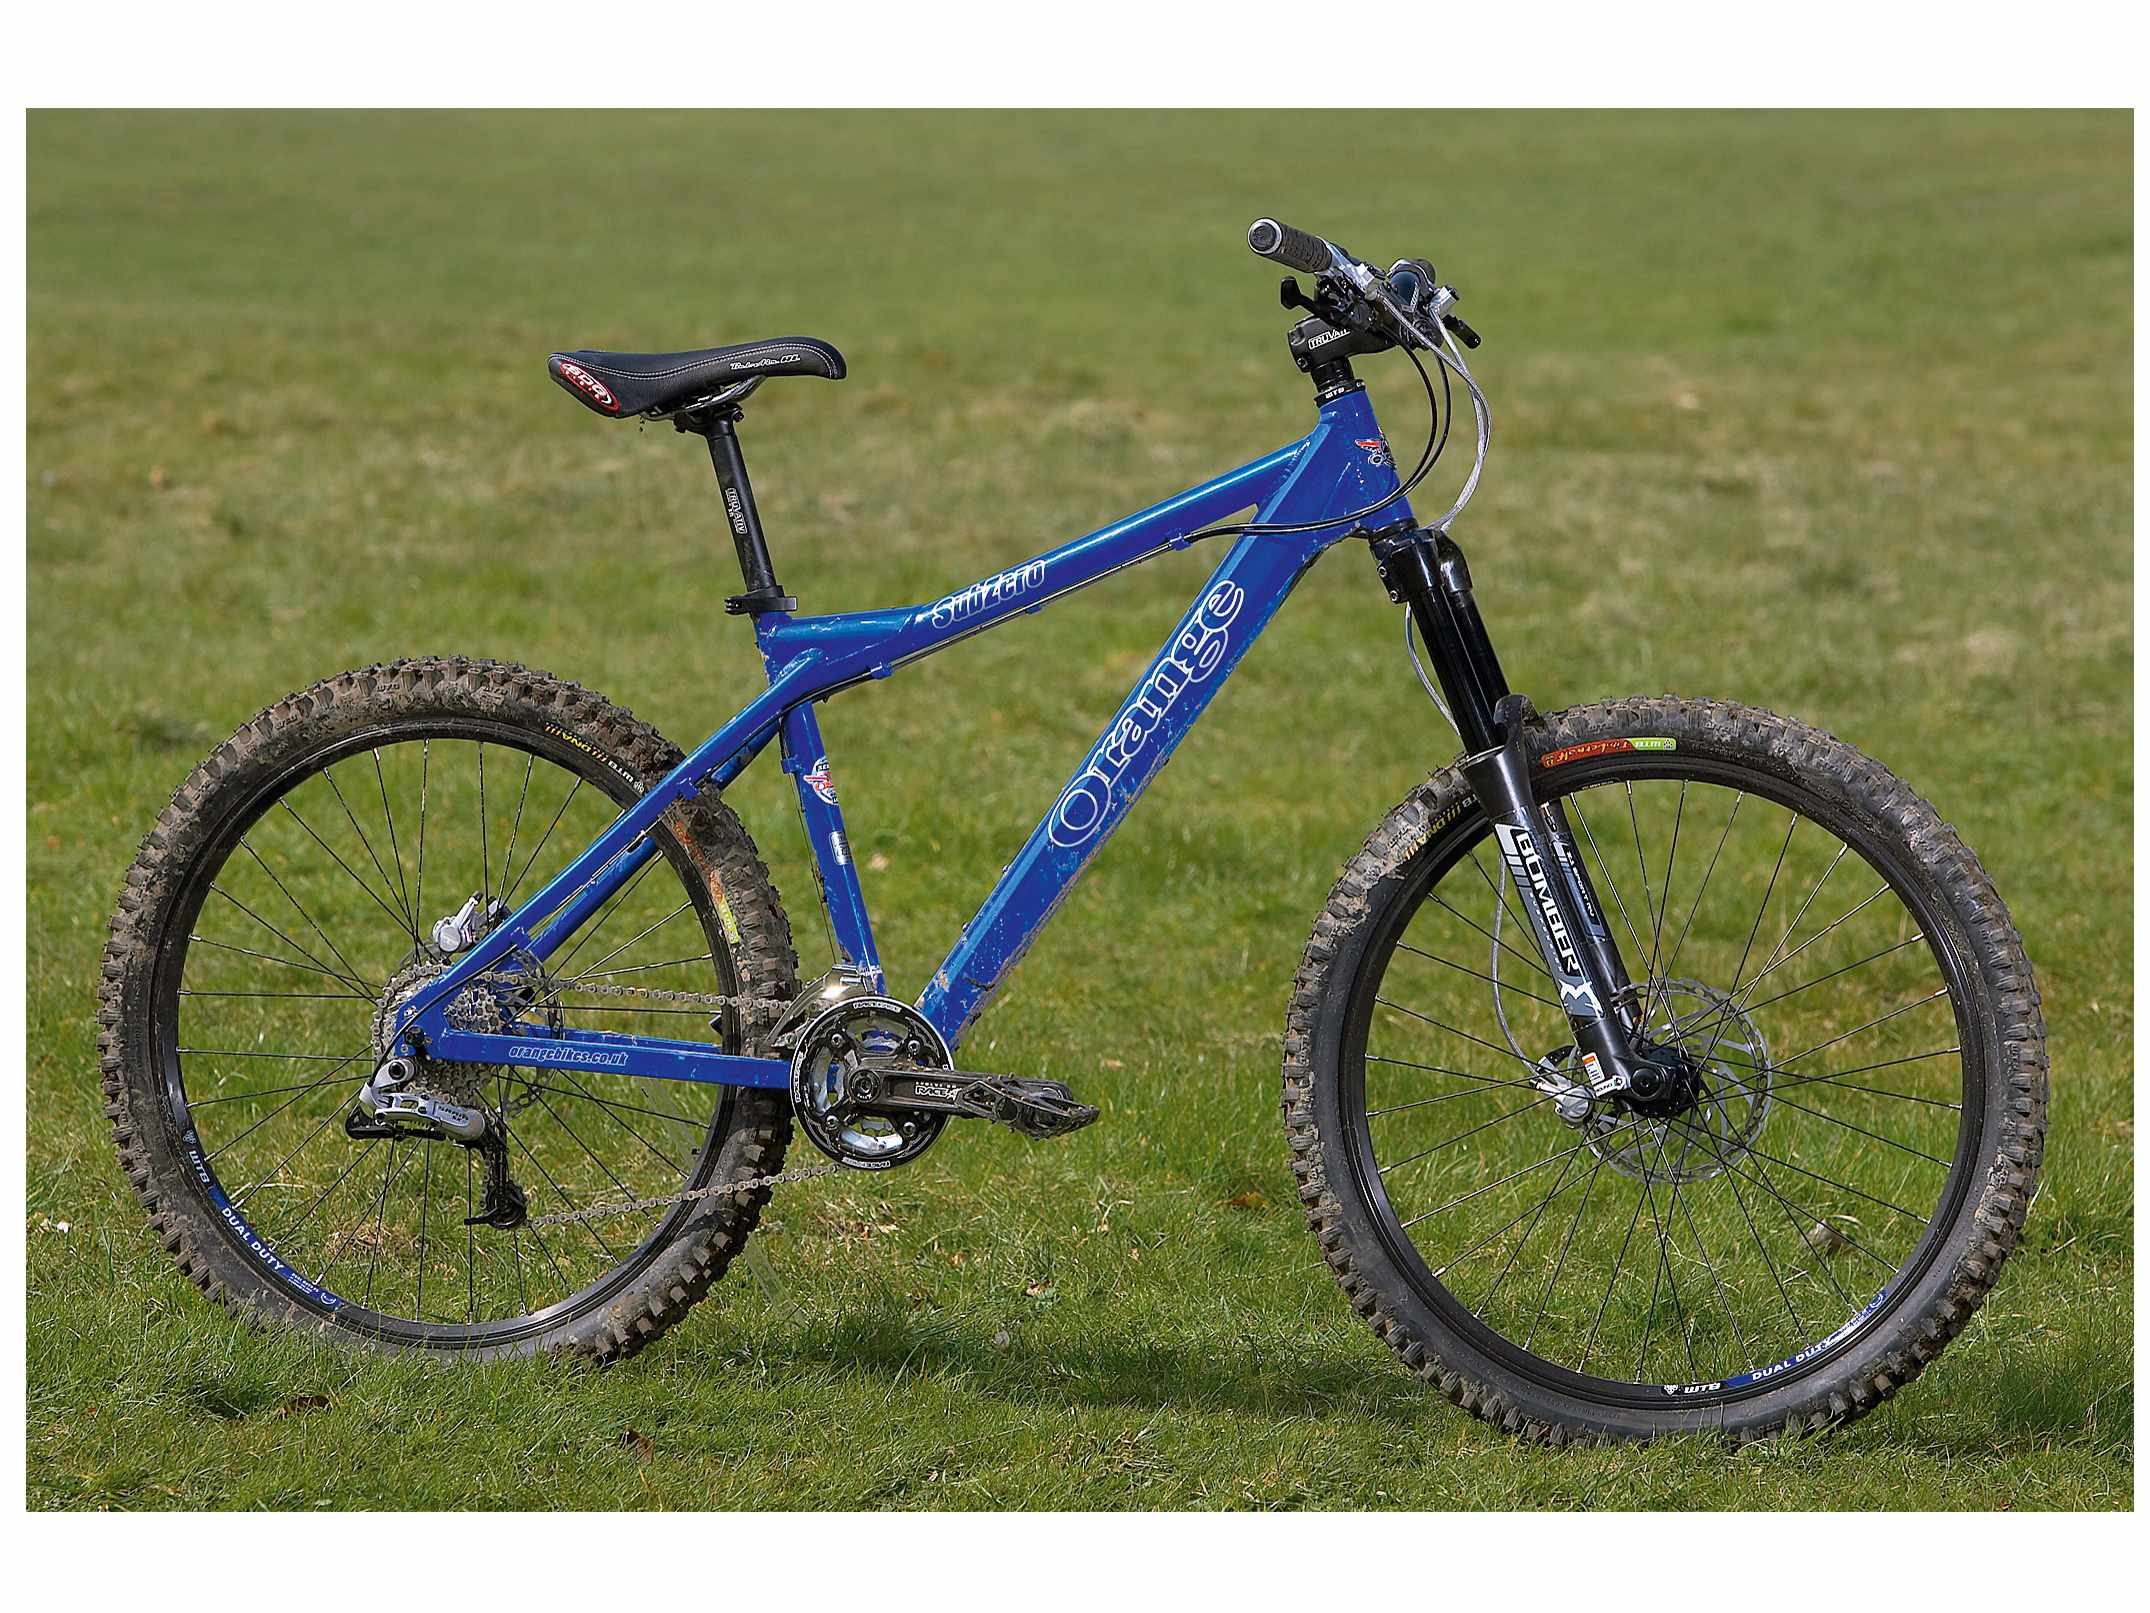 More of a freeride bike than an all-day trail machine